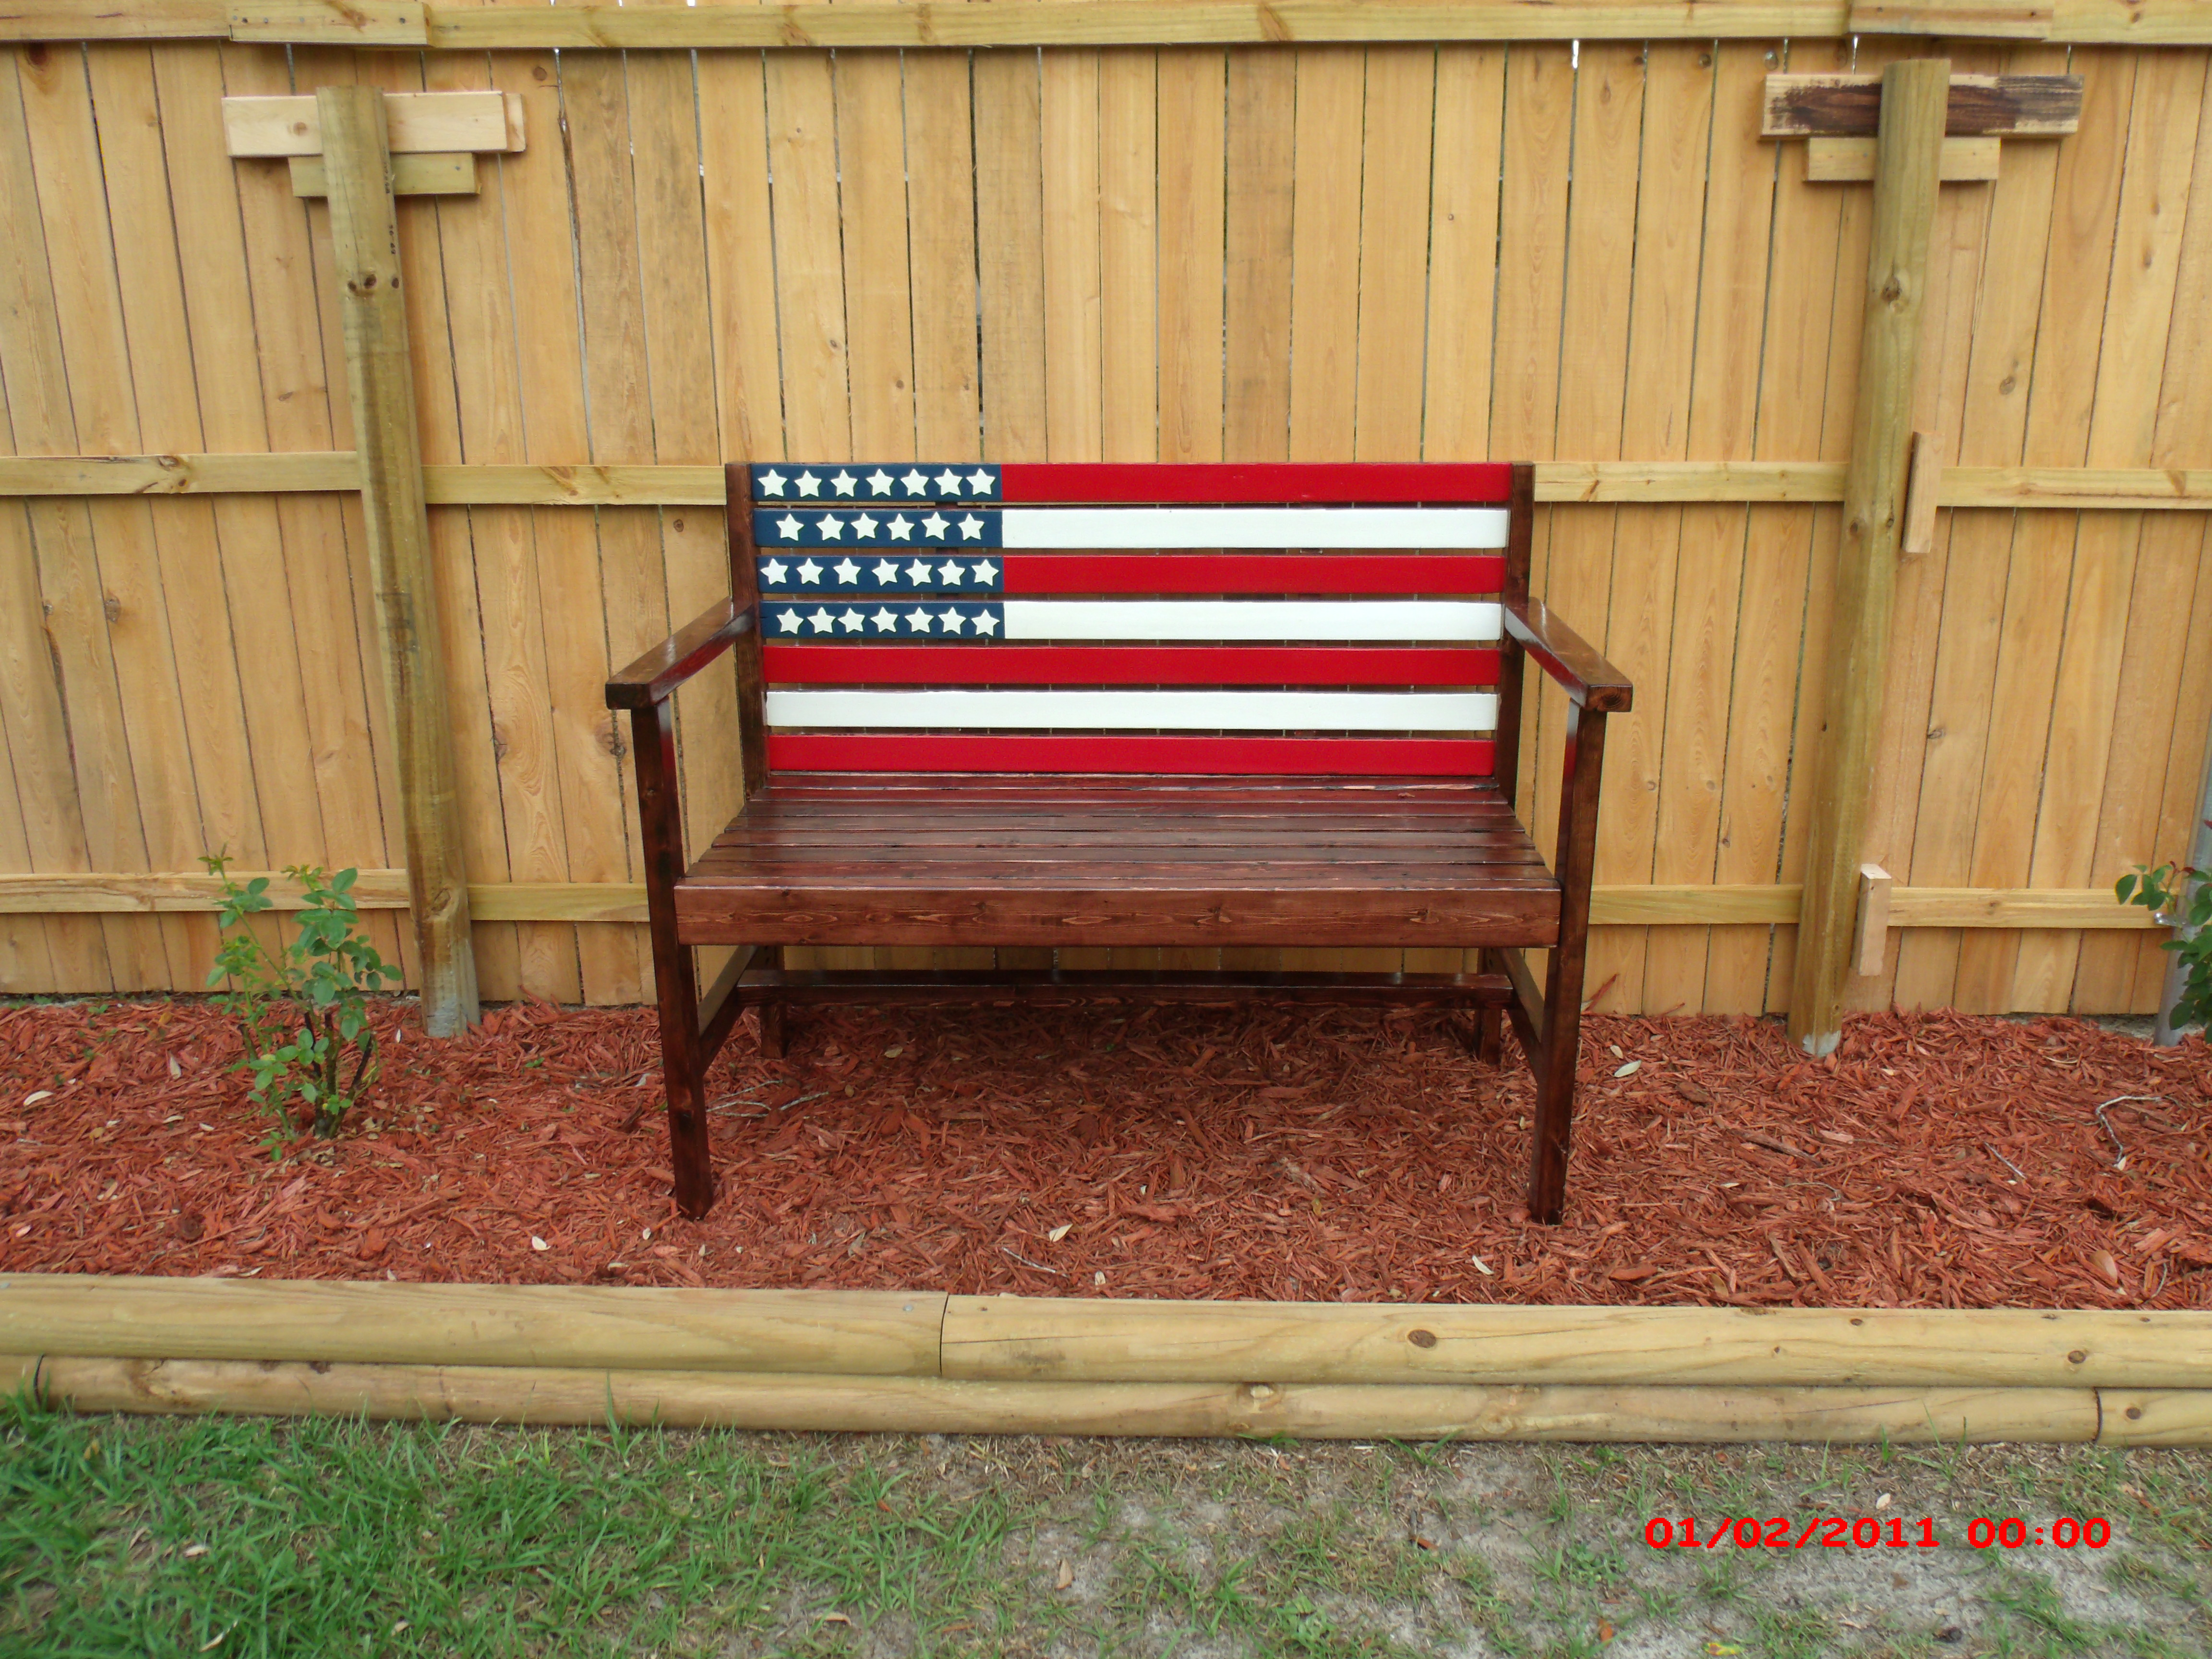 Sensational Ana White Flag Garden Bench Diy Projects Pdpeps Interior Chair Design Pdpepsorg